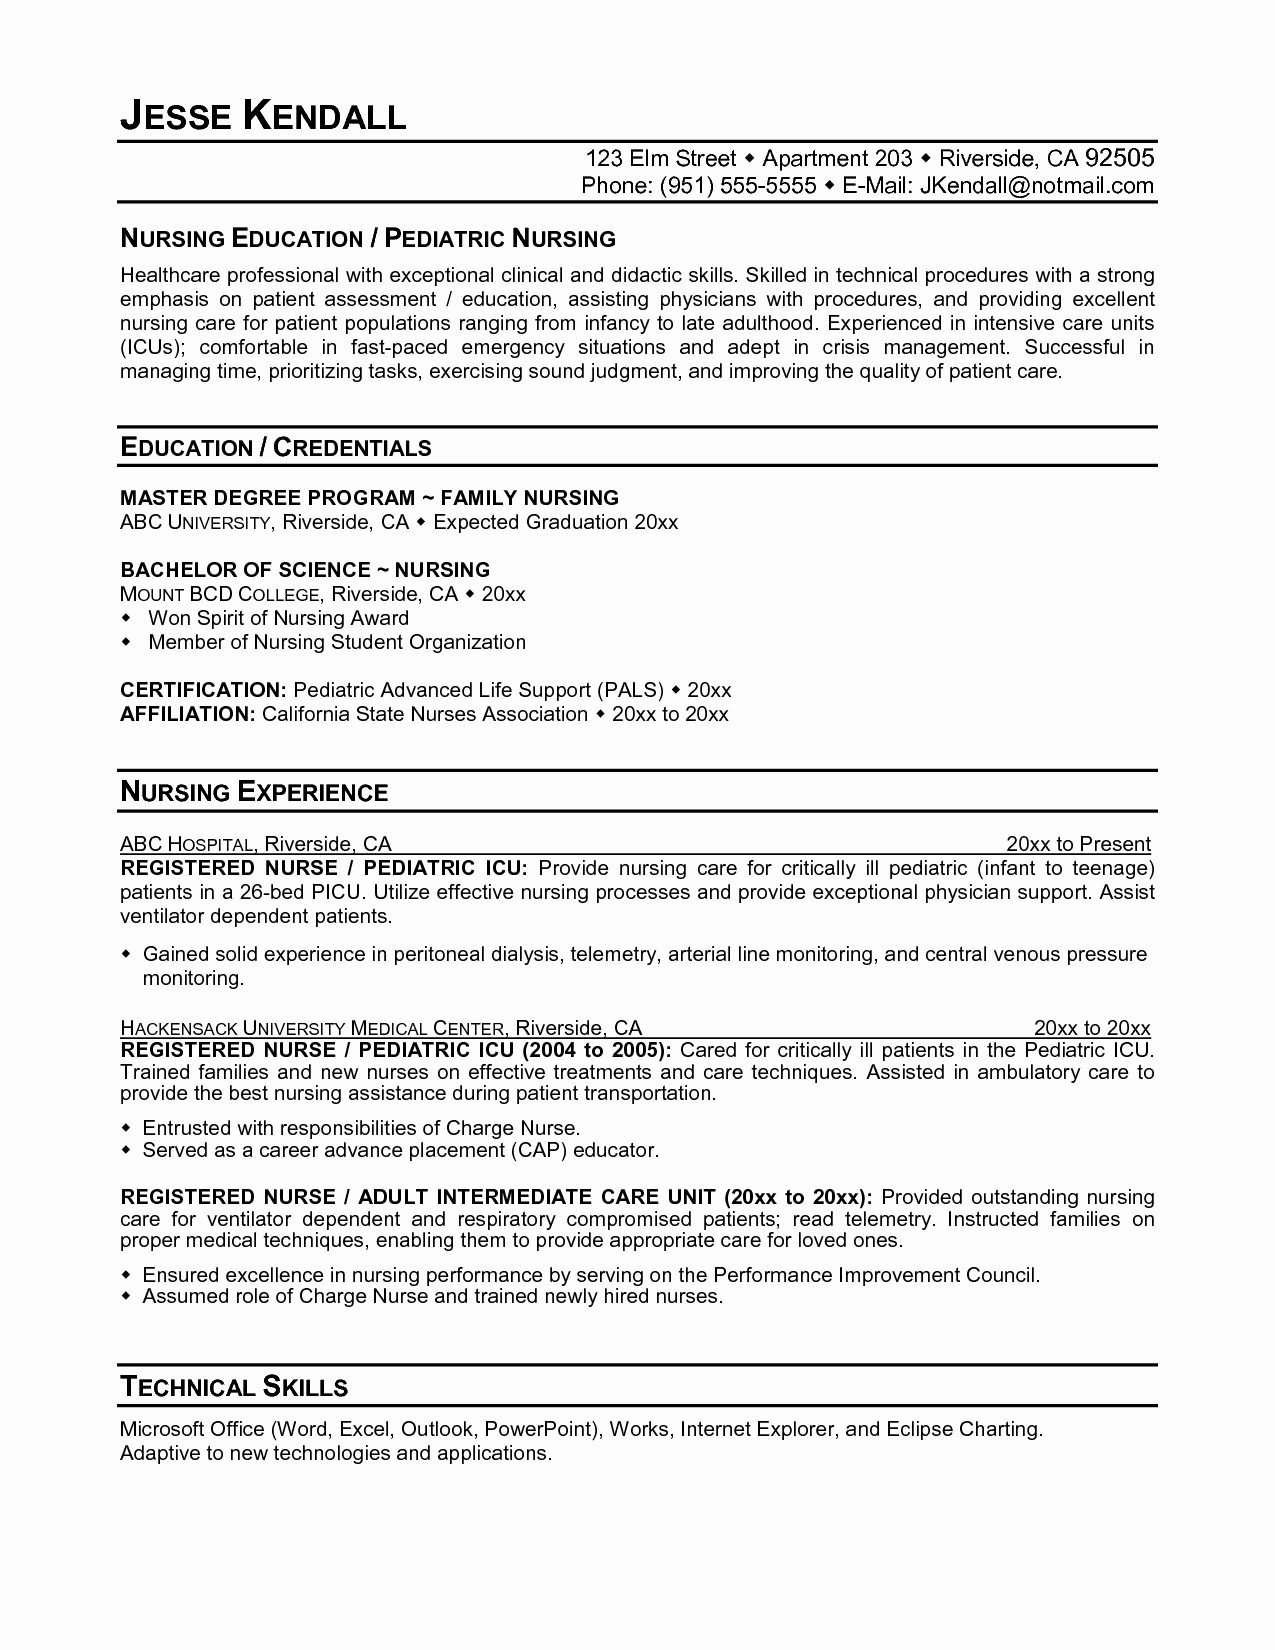 Nurse Resume Template Word - Rn Resume Template Beautiful Rn Resume Templates New New Nurse